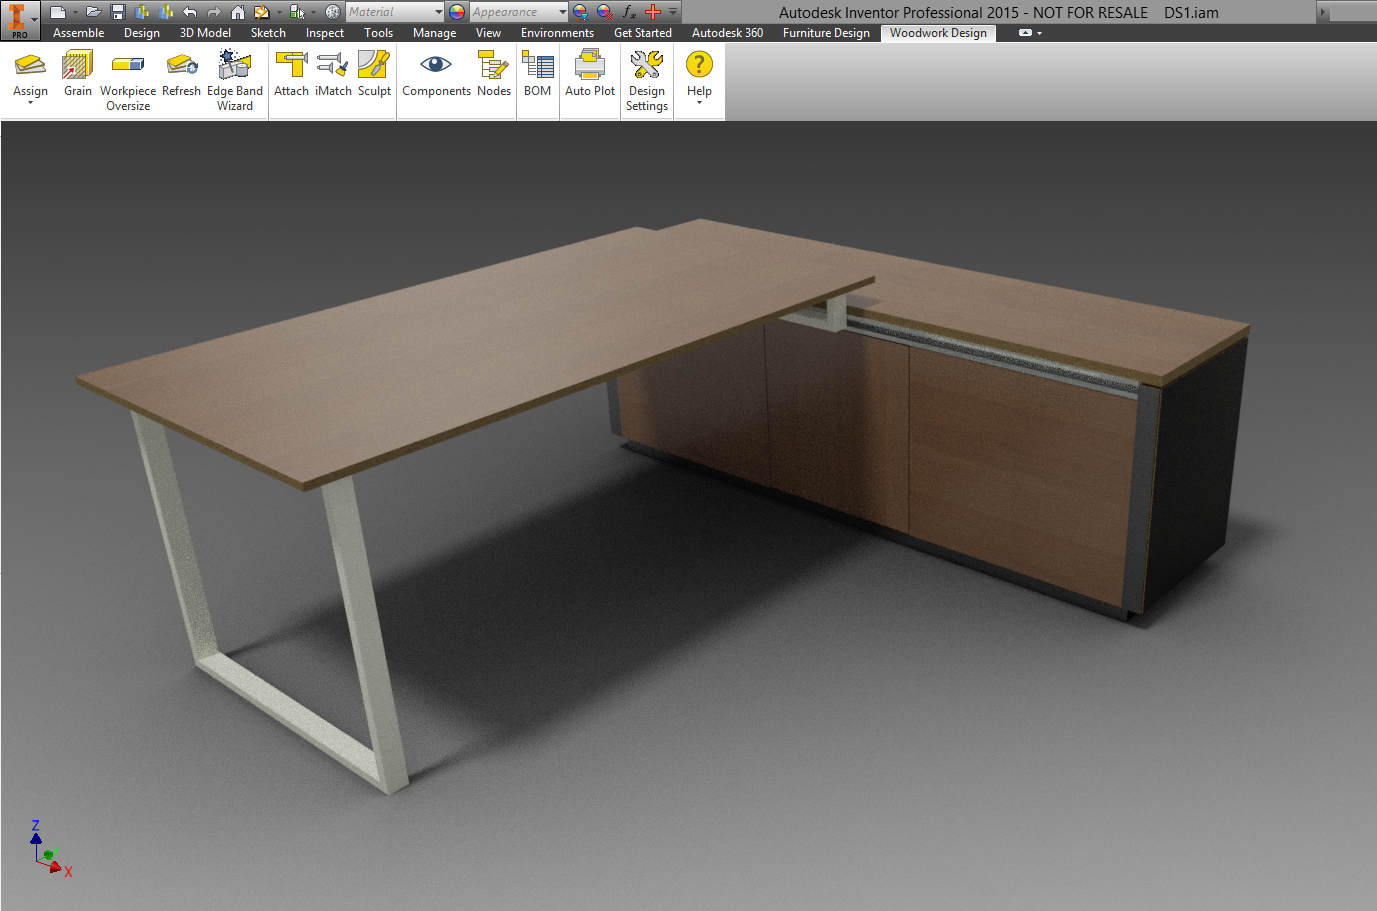 Woodwork for inventor blogcriteria for the selection of for 3d furniture design software free